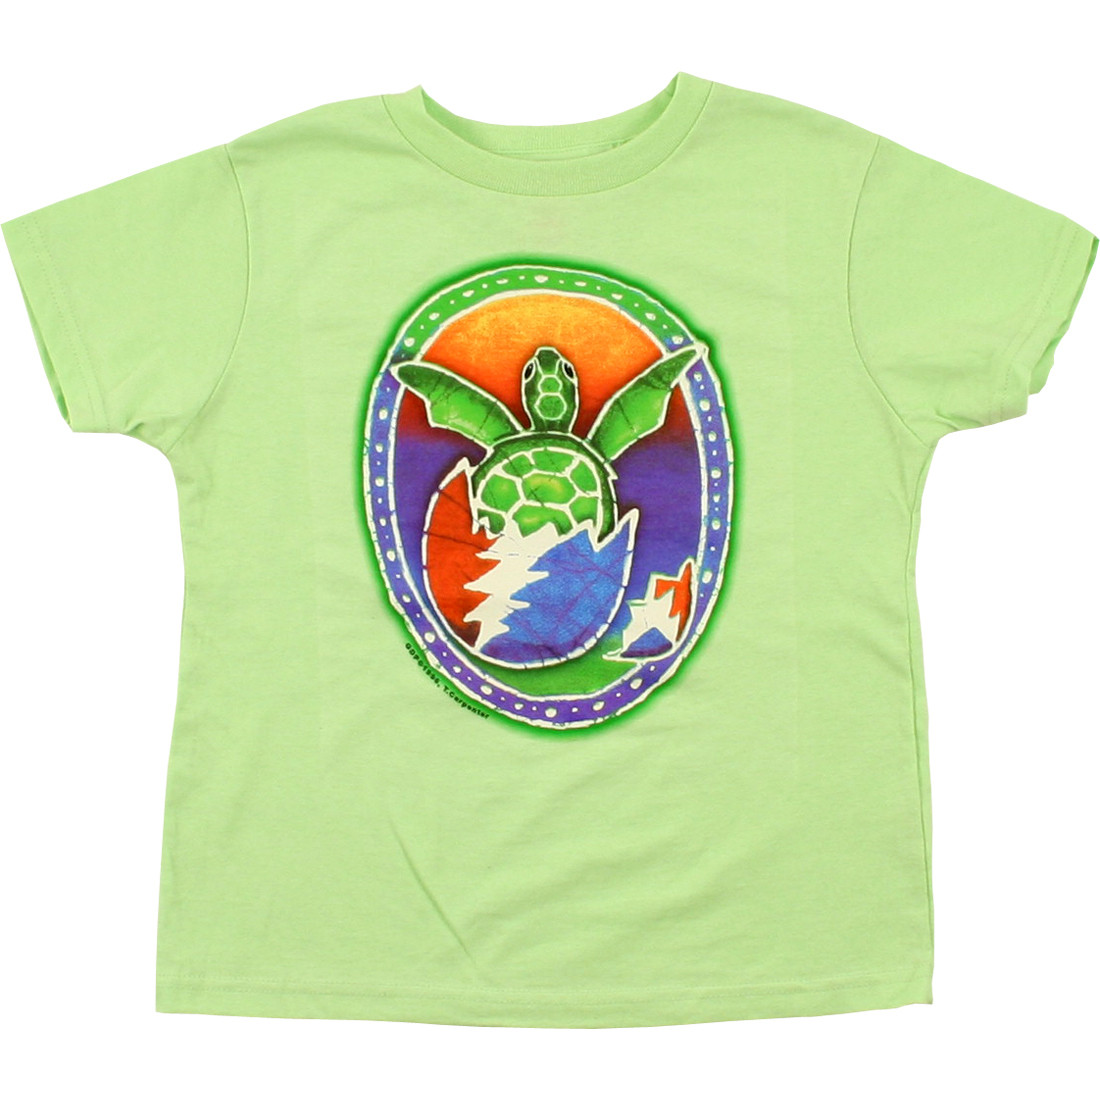 Steal Your Turtle Green T-Shirt